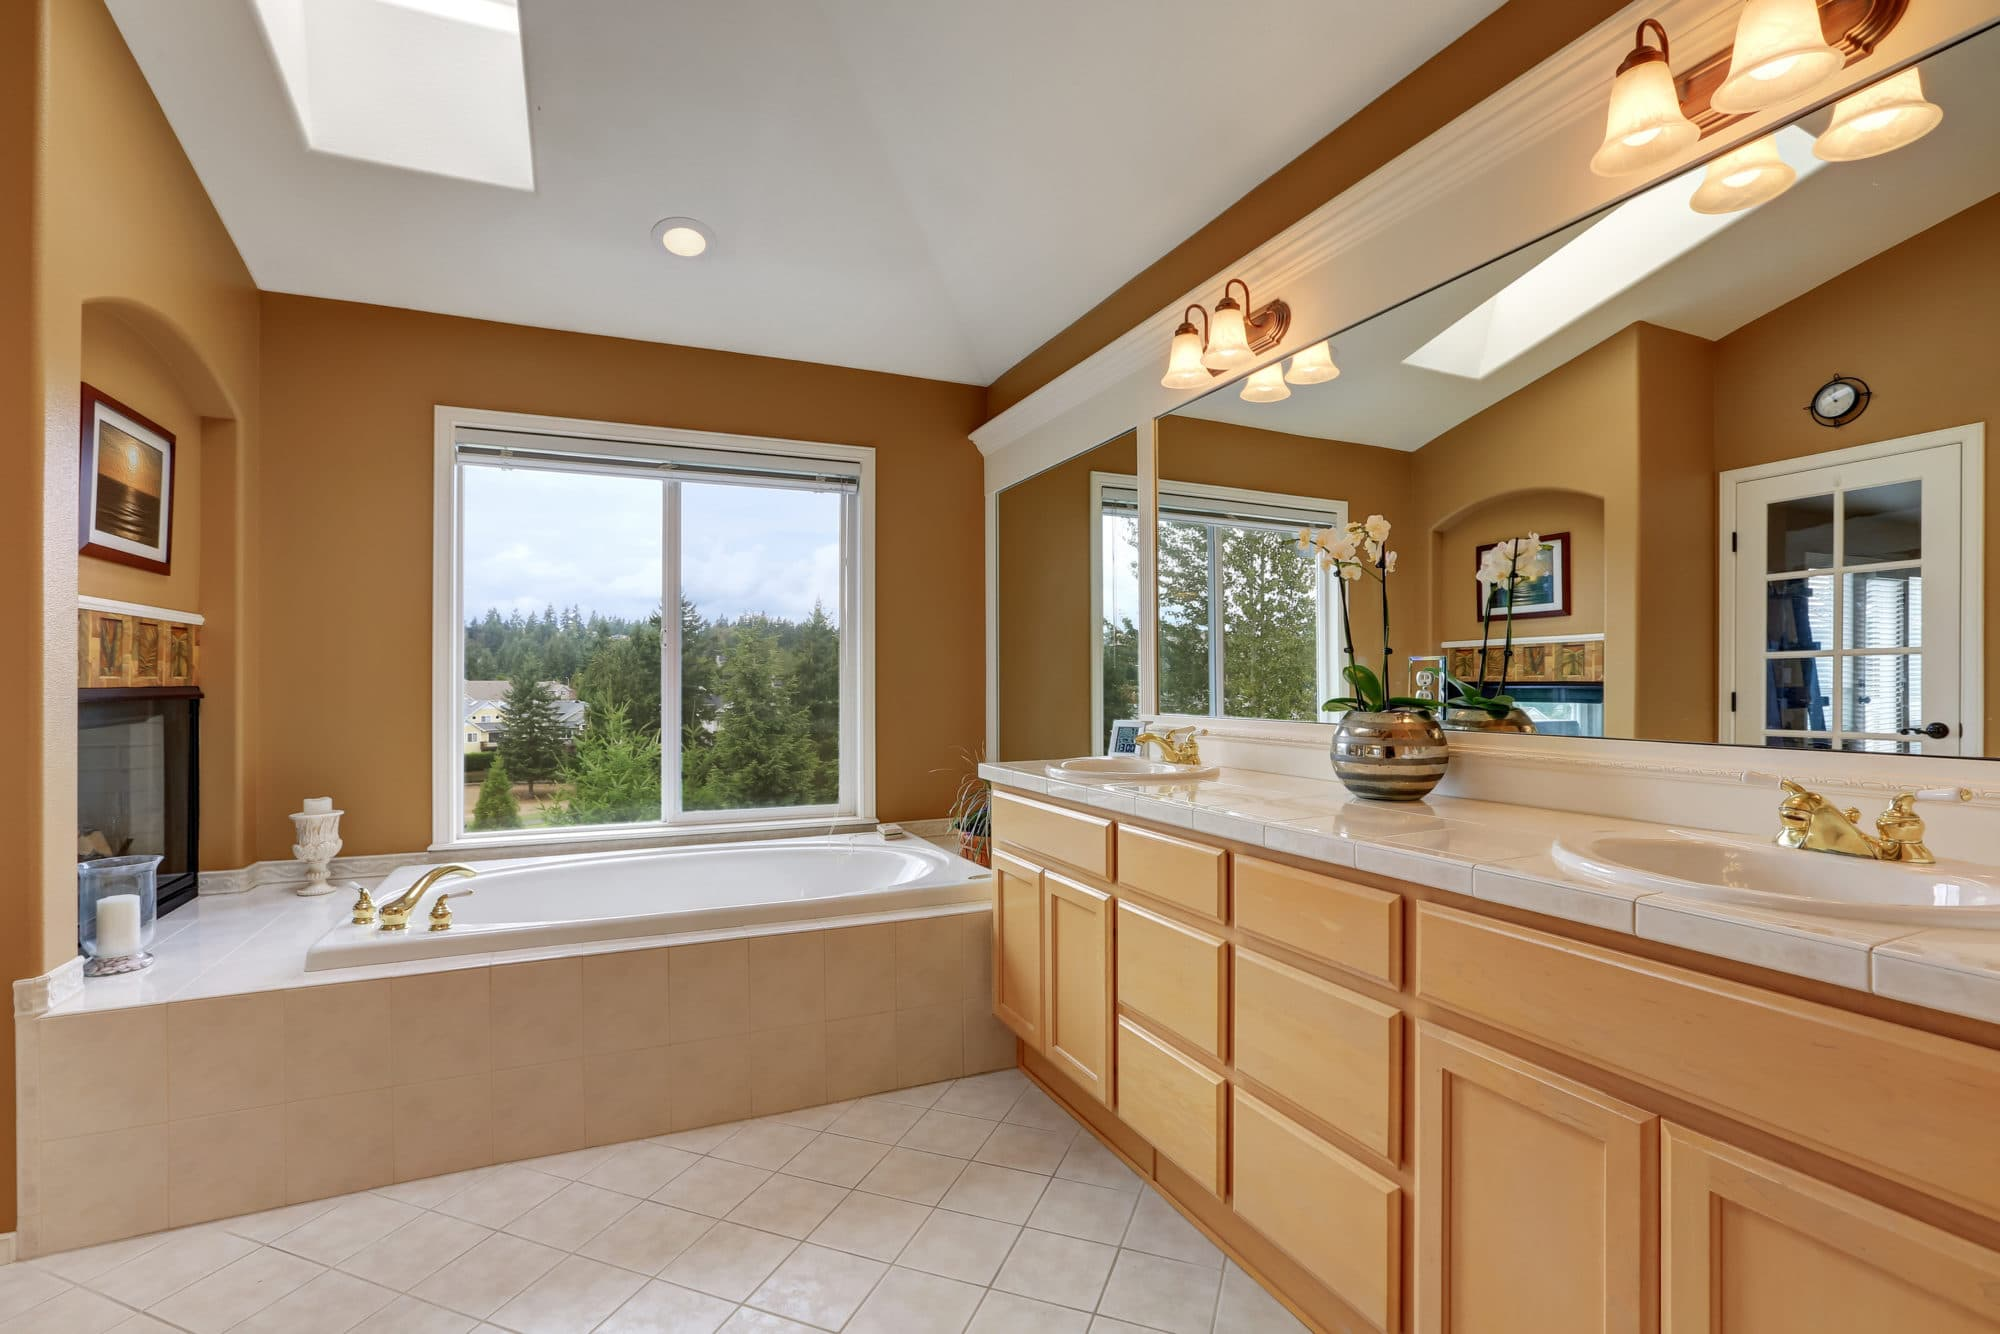 Sierra Remodeling with brighten your day with skylights in your bathroom!